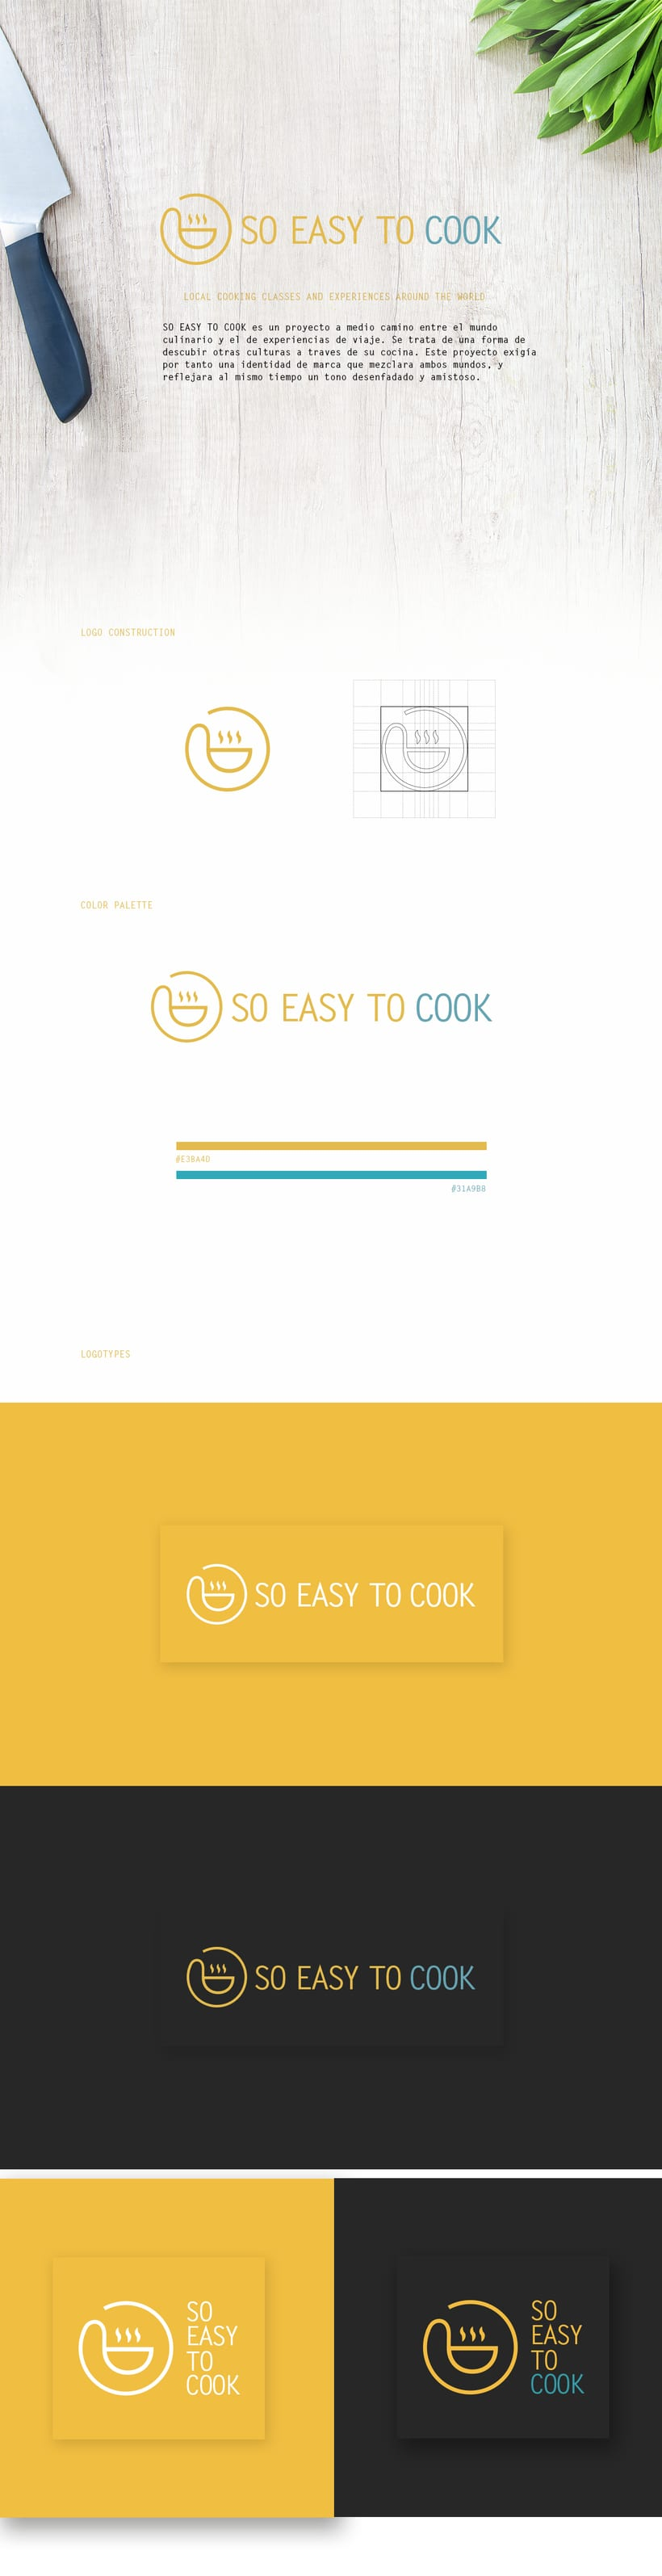 So Easy To Cook - Branding -1